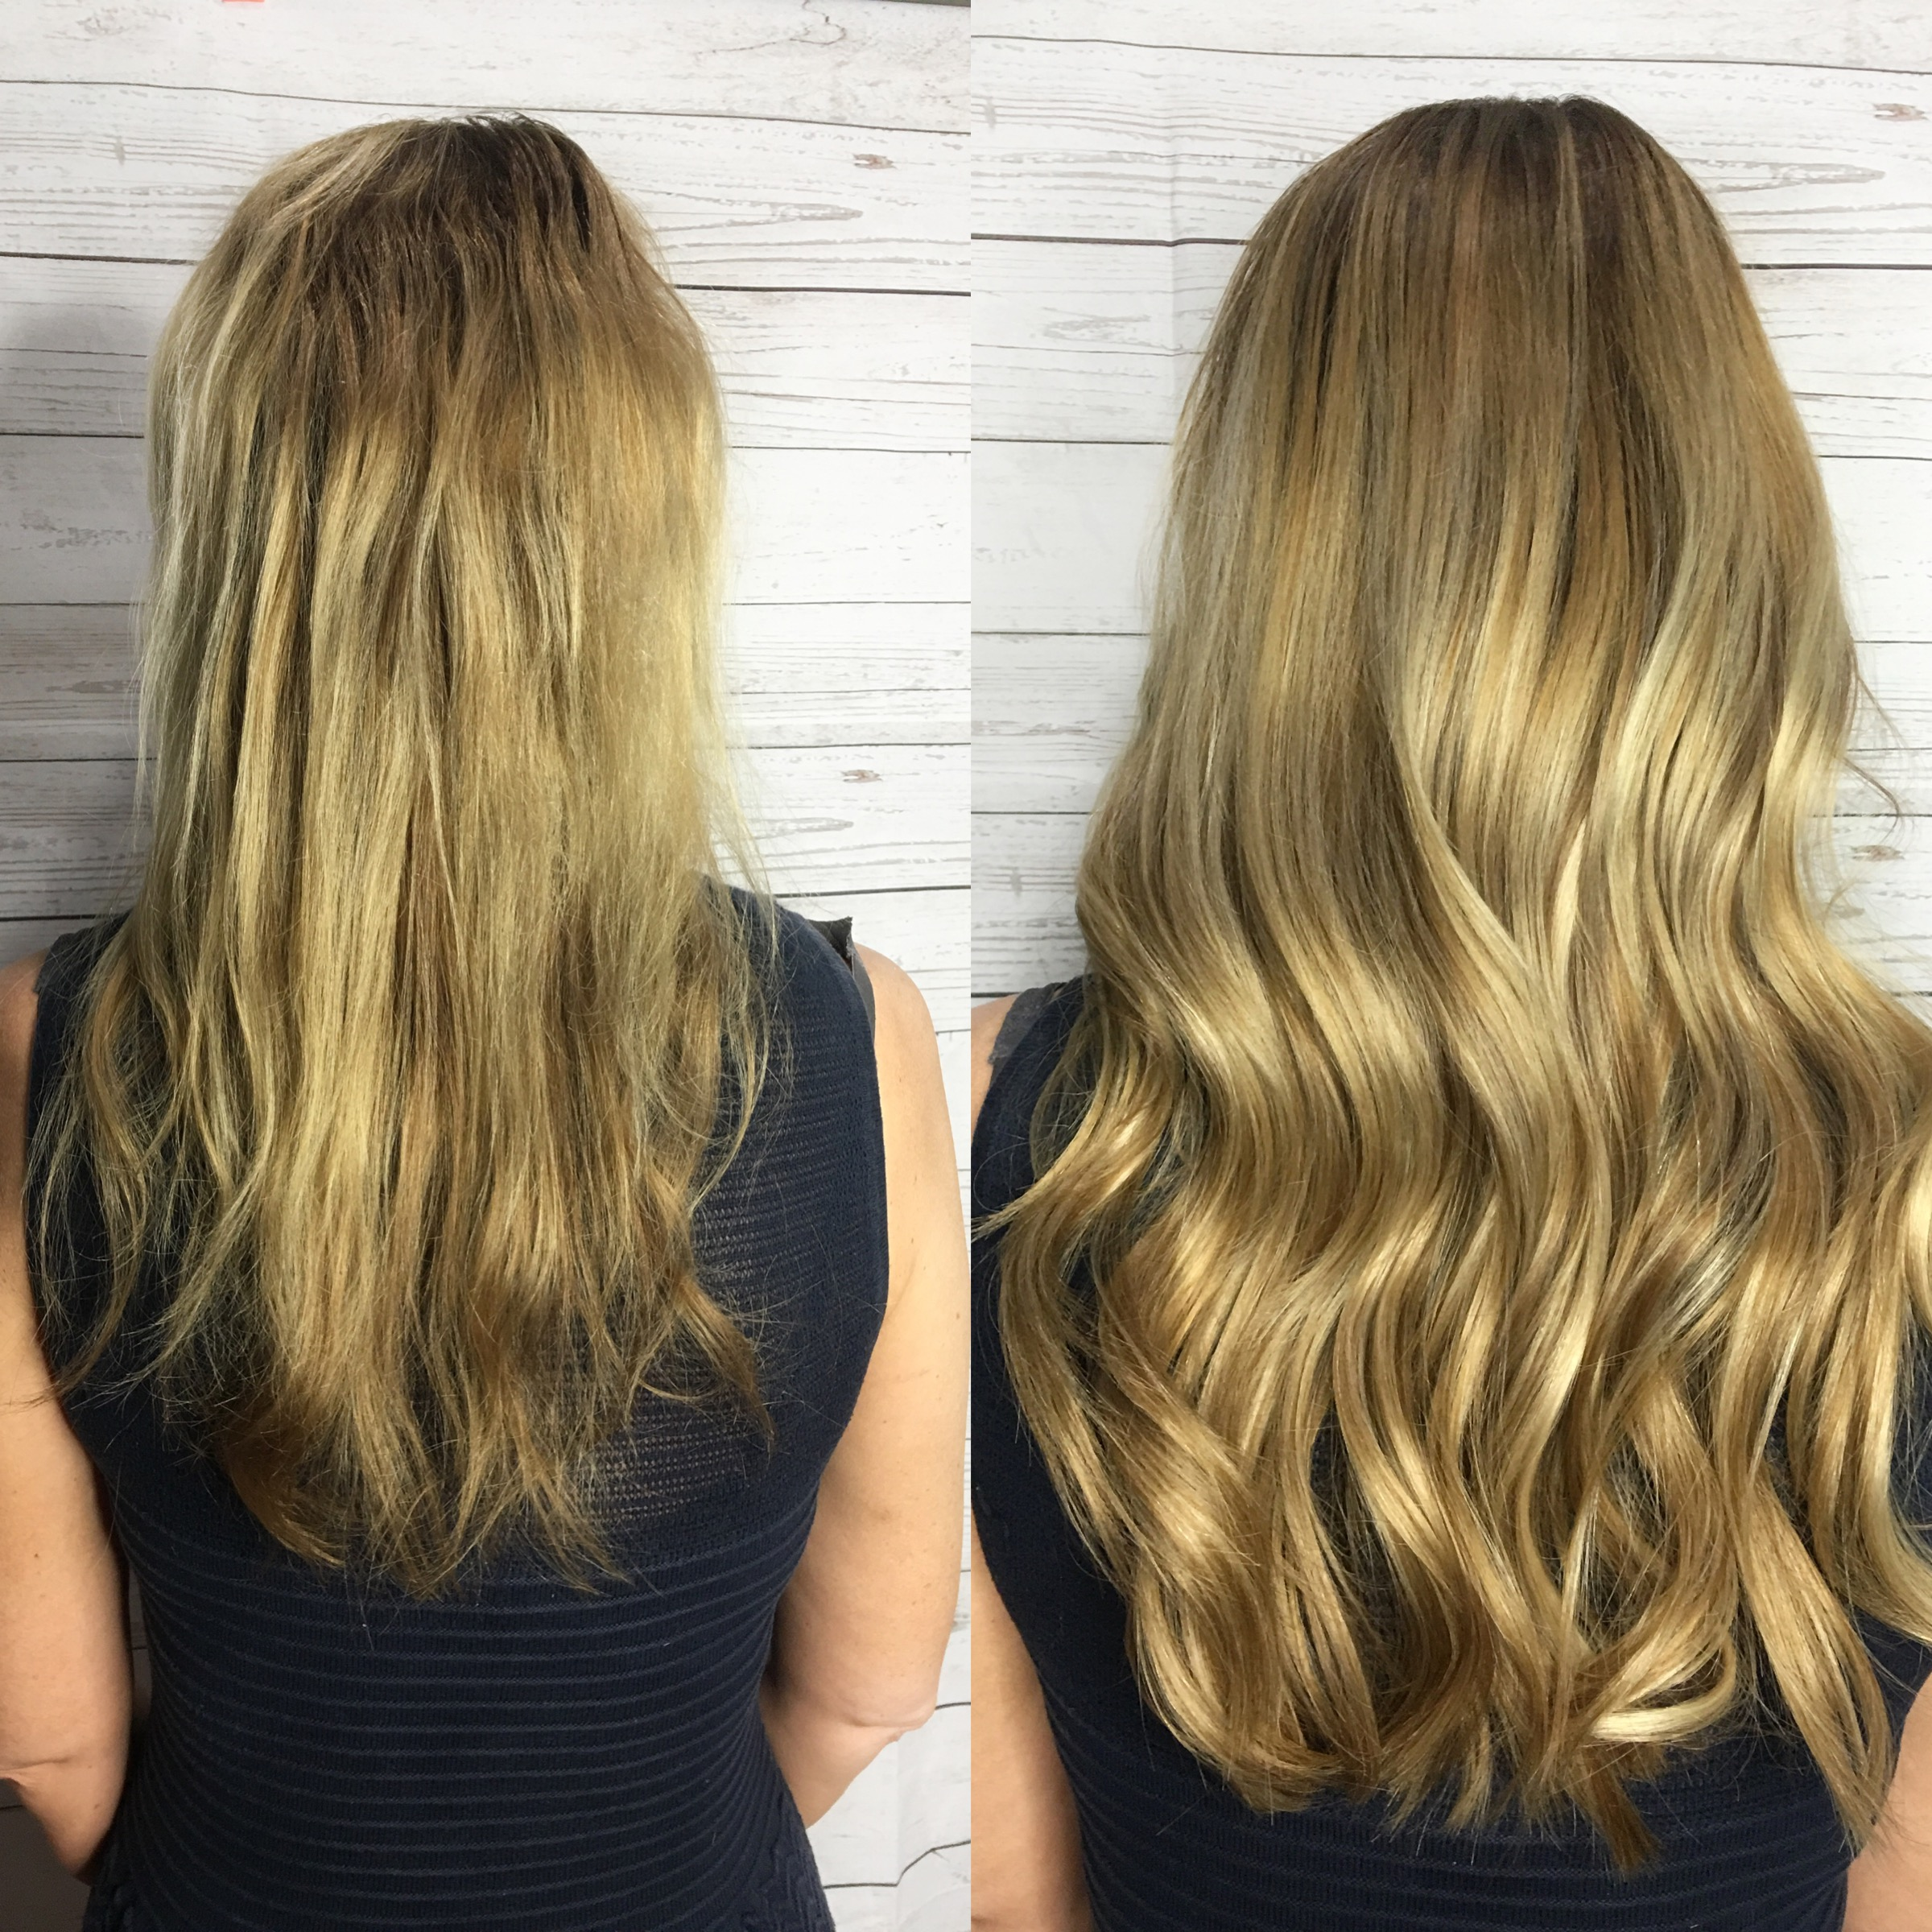 The 1 Secret To Natural Looking Hair Extensions Revealed